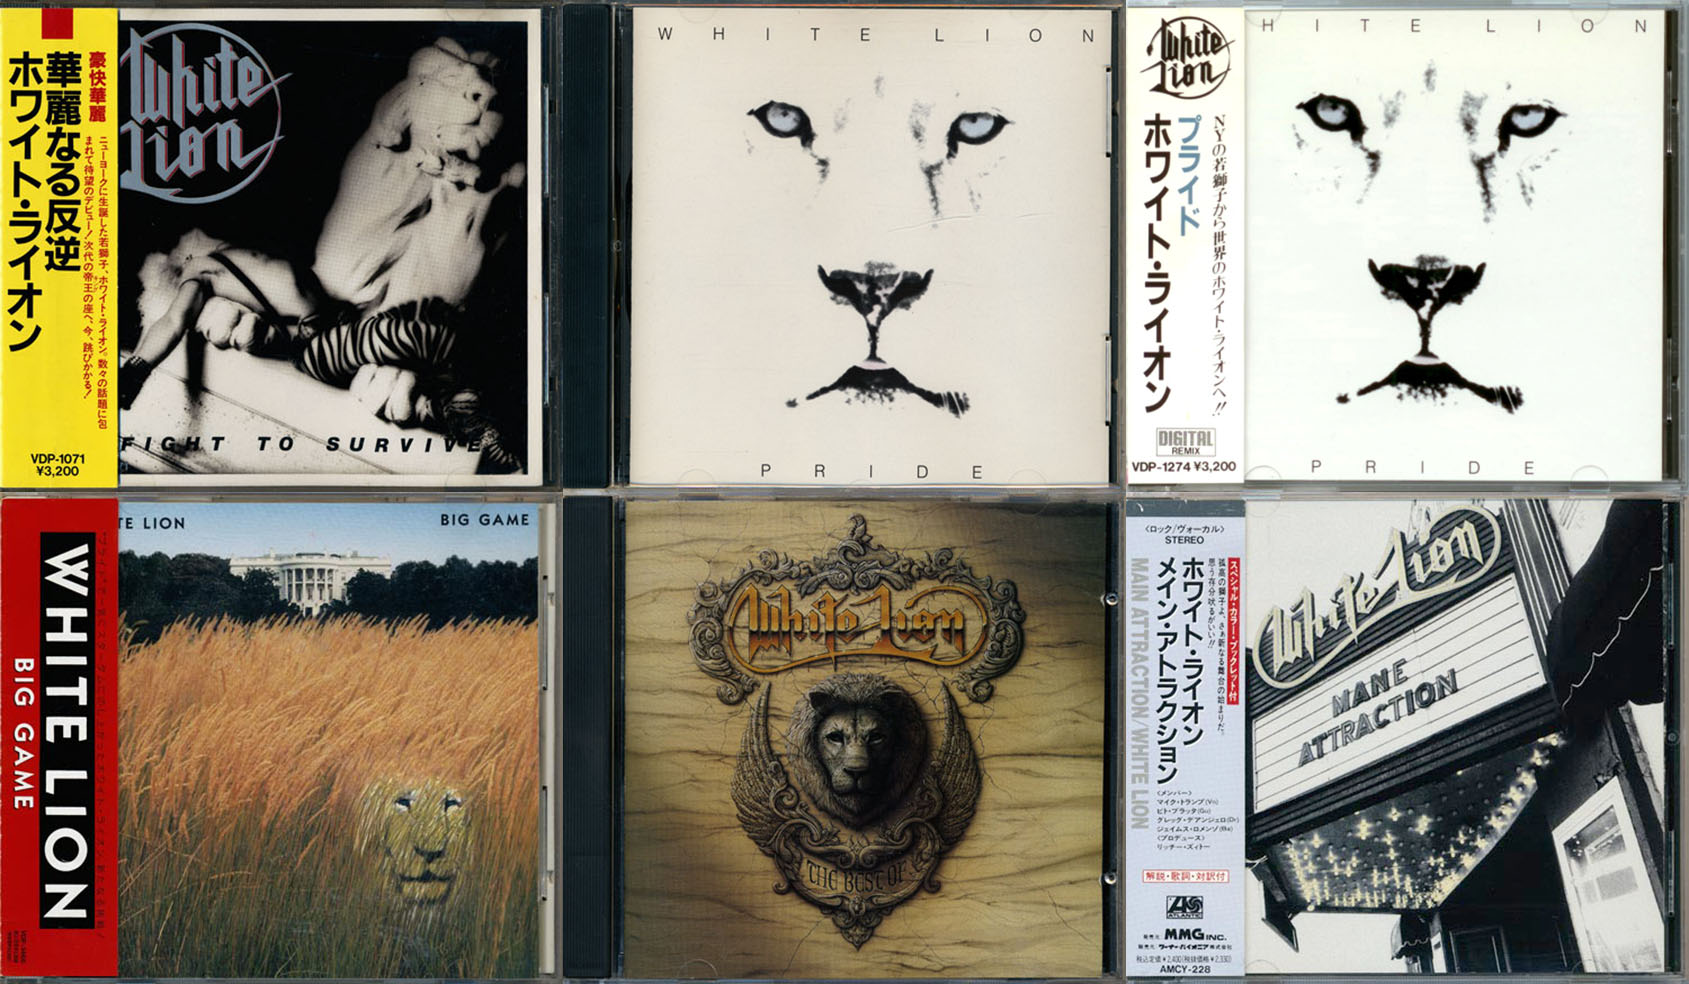 White Lion - Albums Collection 1985-1992 (6CD) [Re-Up] / AvaxHome